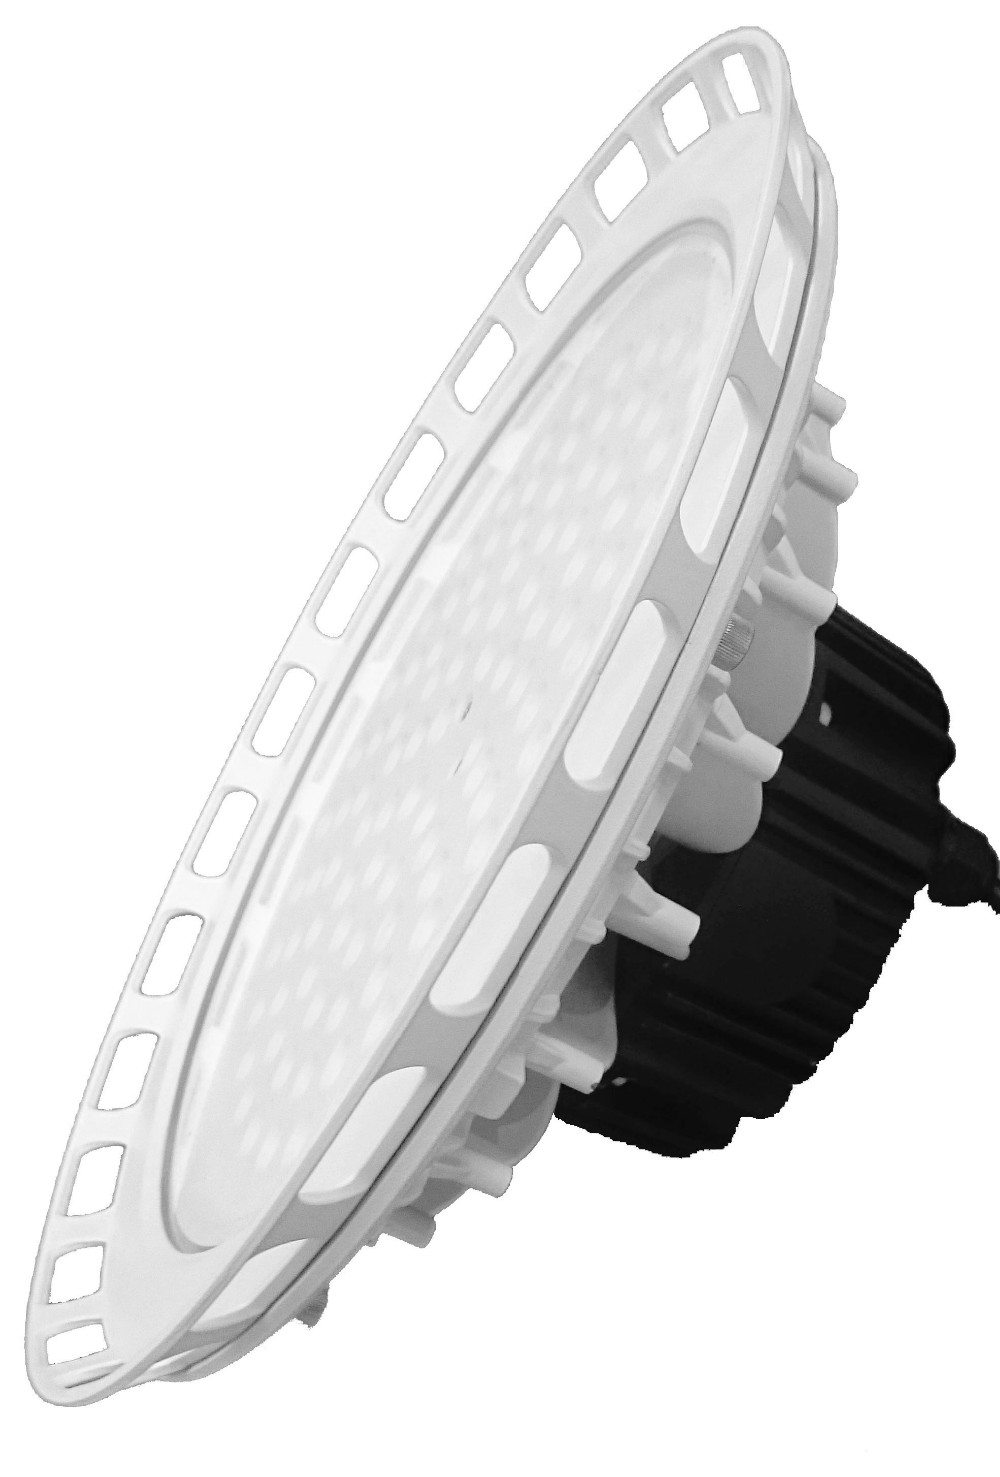 warehouse light  Sports Stadiums LED UFO high bay light 100W  Meanwell driver Brideglux chip commercial lighting